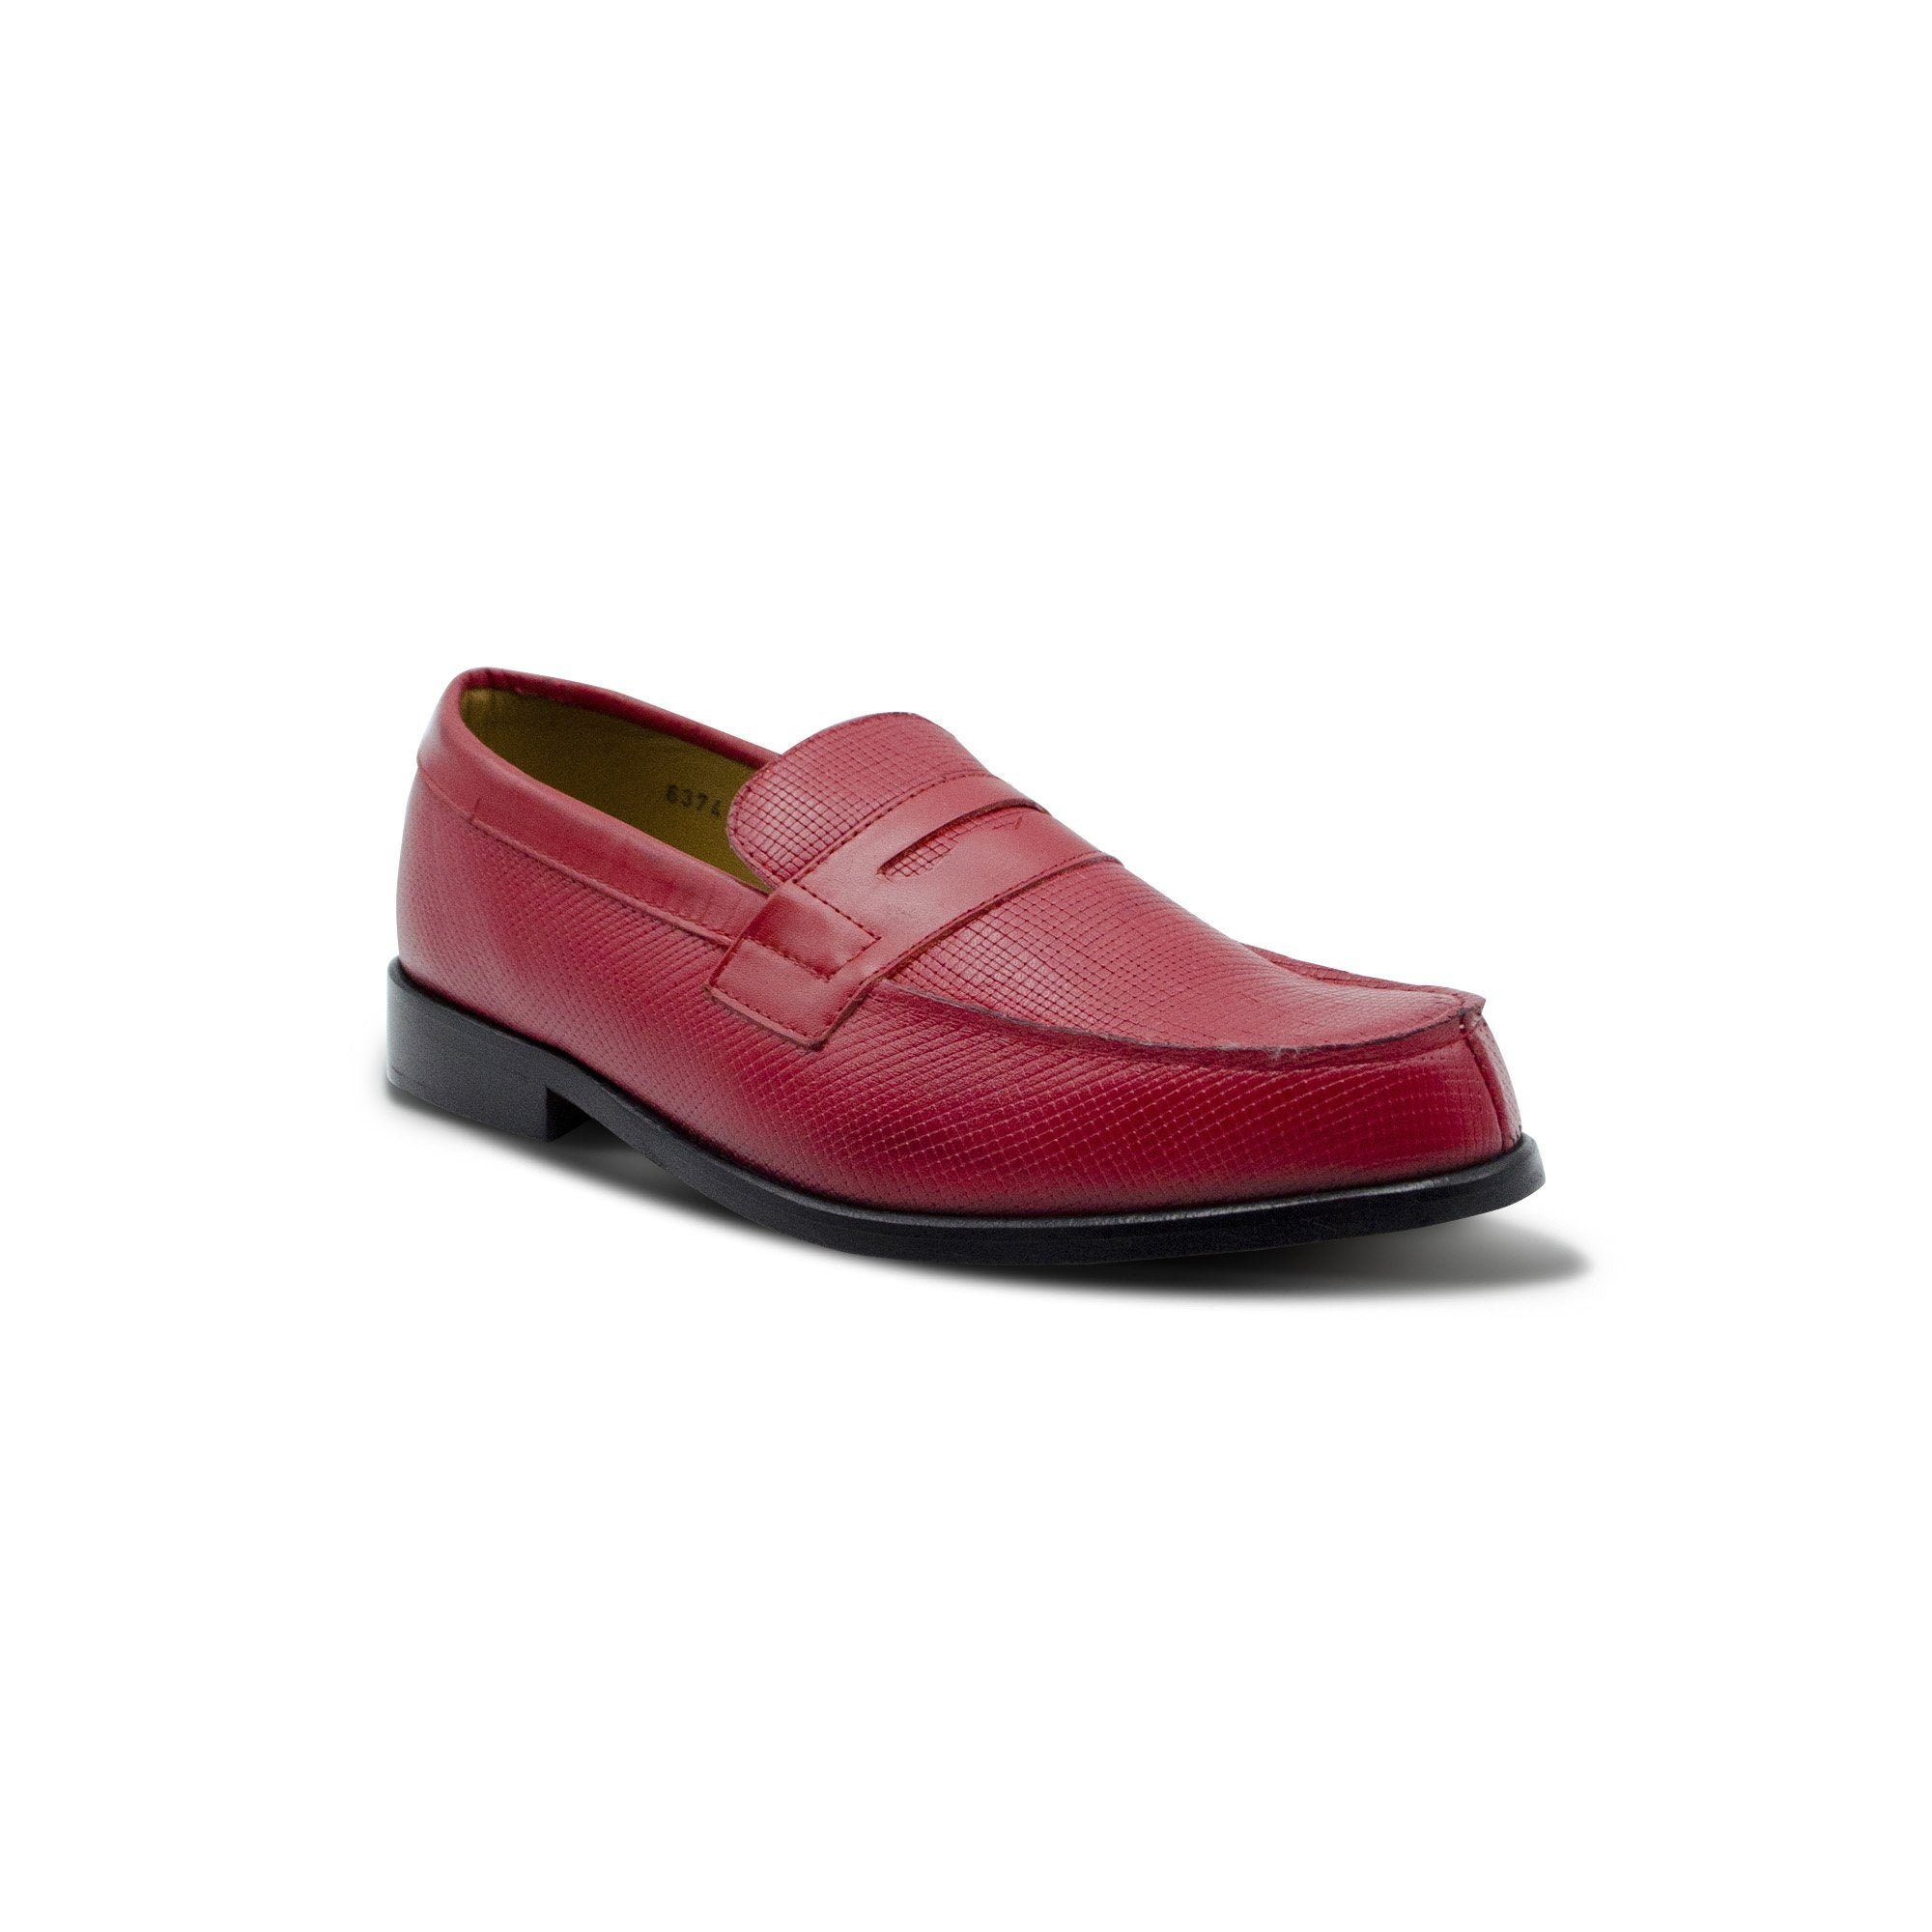 Mocassin College cuir serpent rouge English Classics Mocassins English Classics